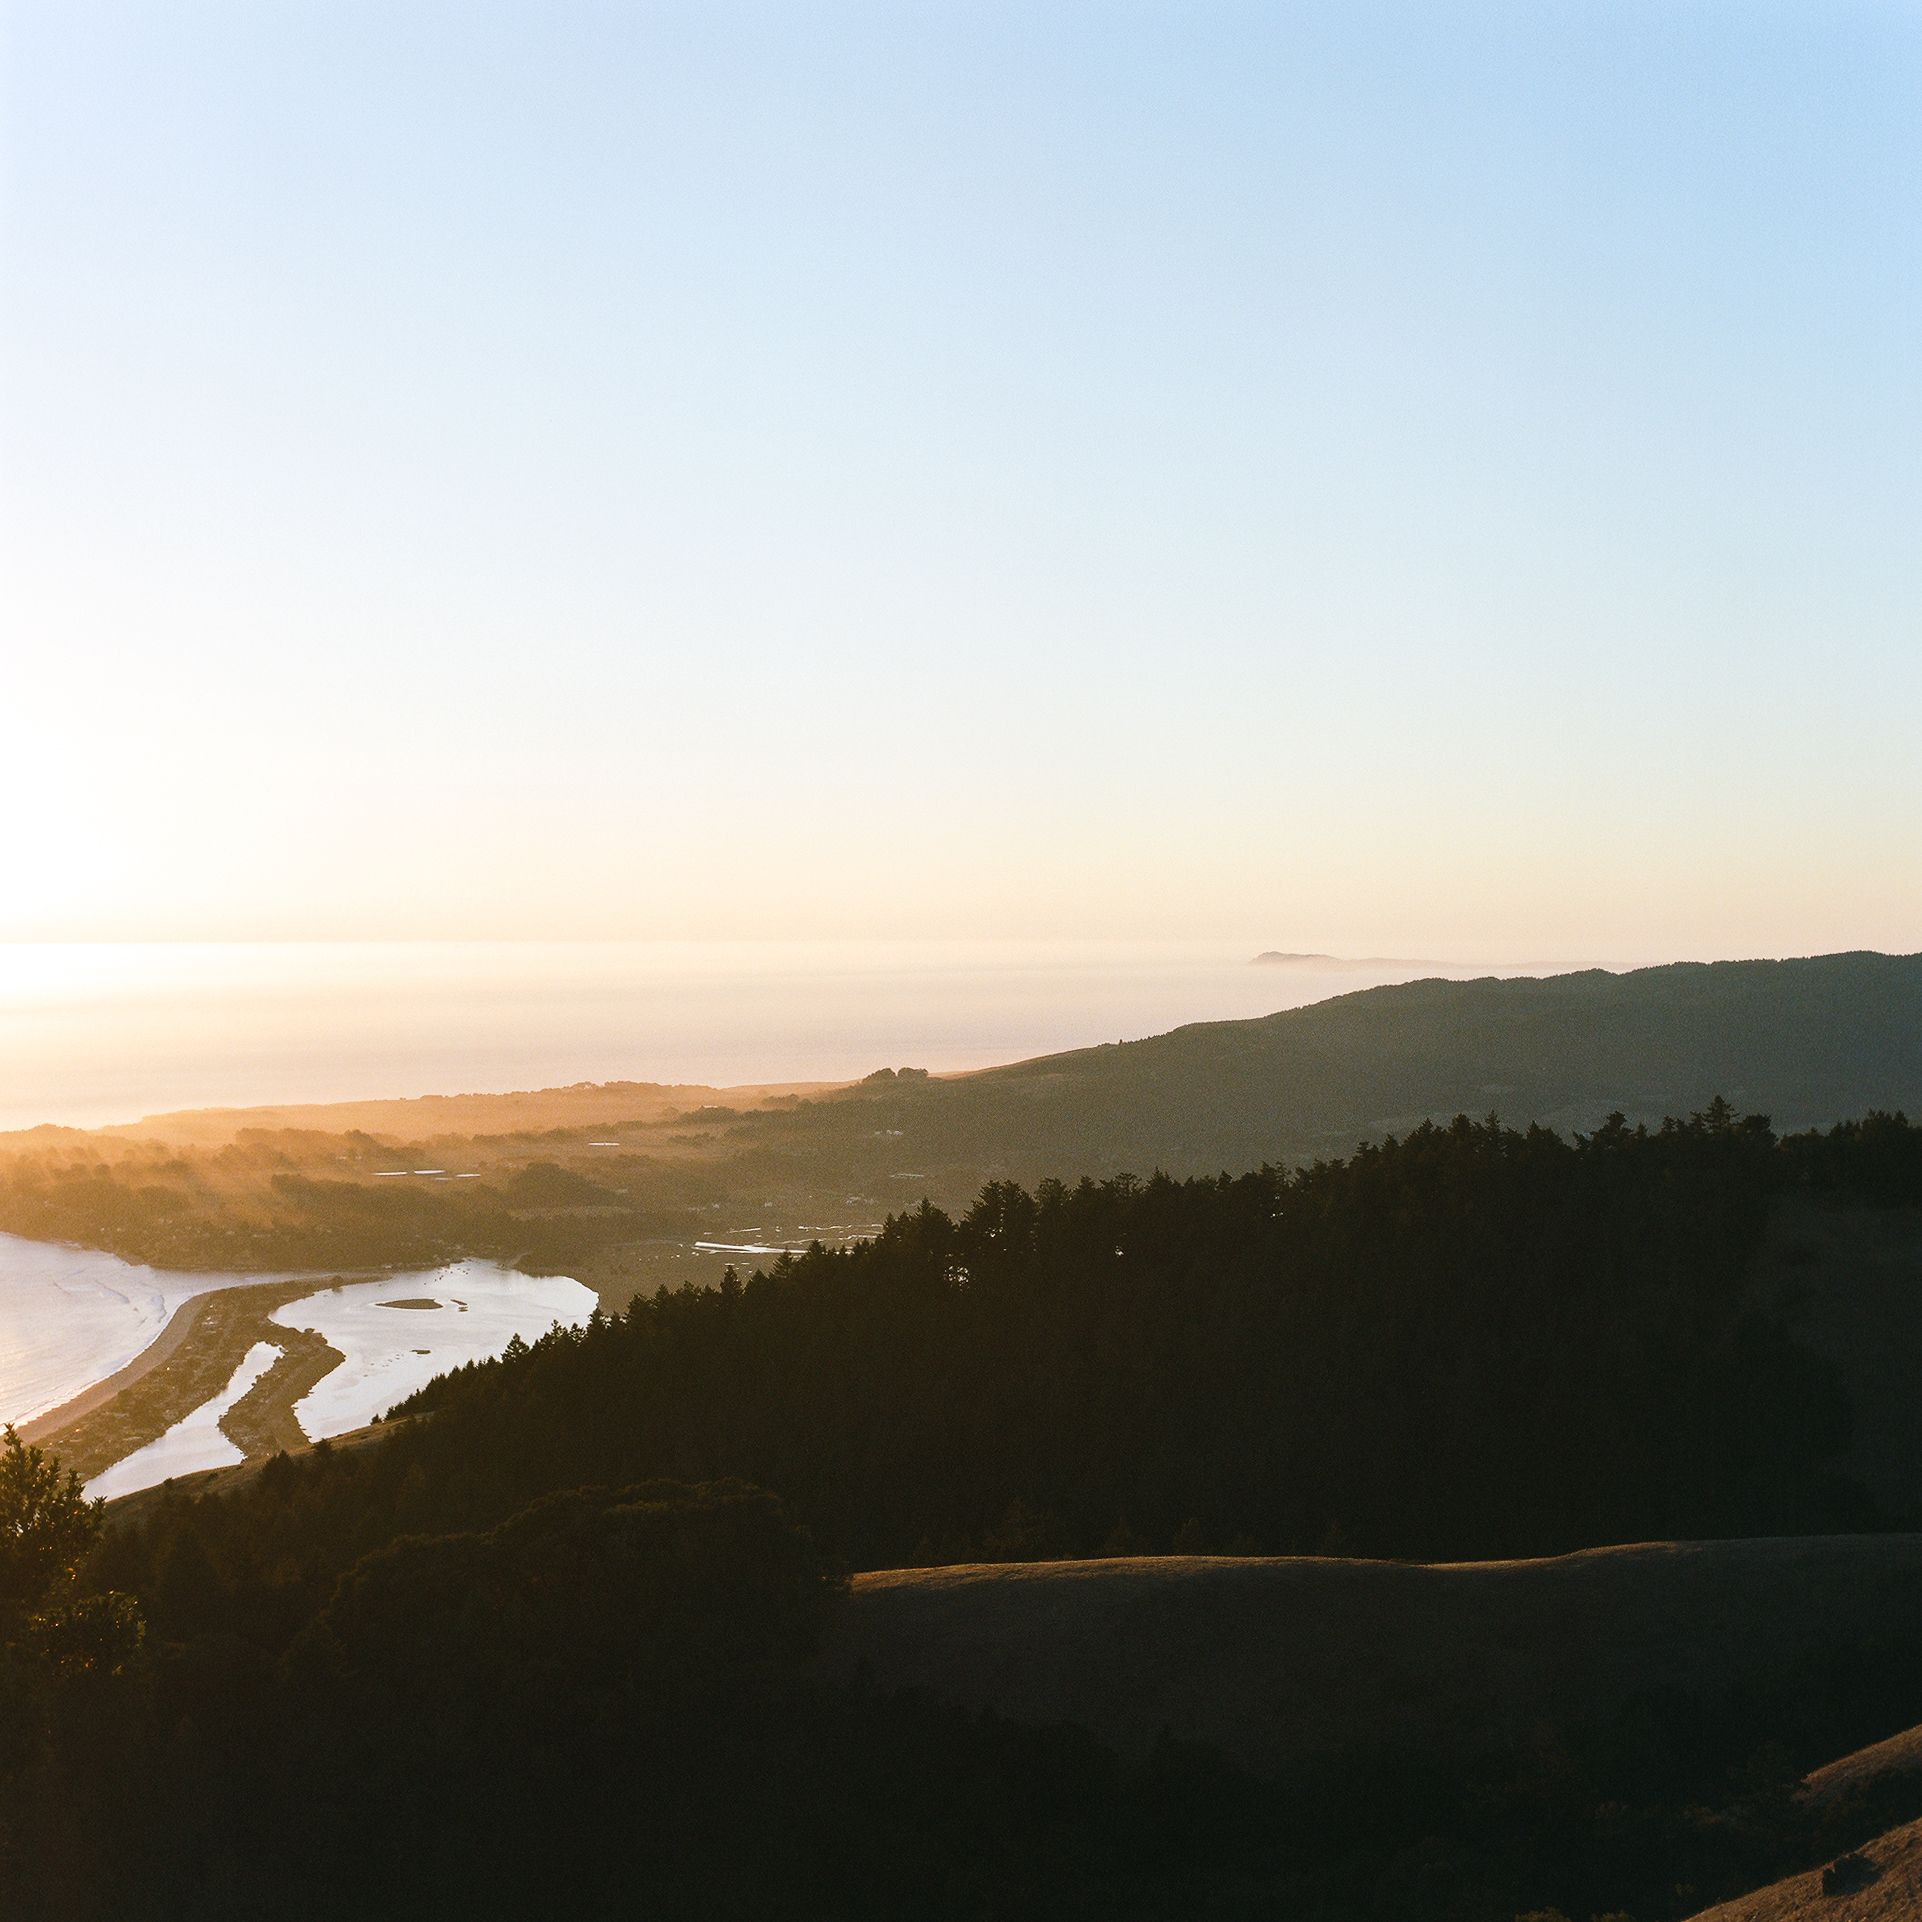 Bolinas in the Distance